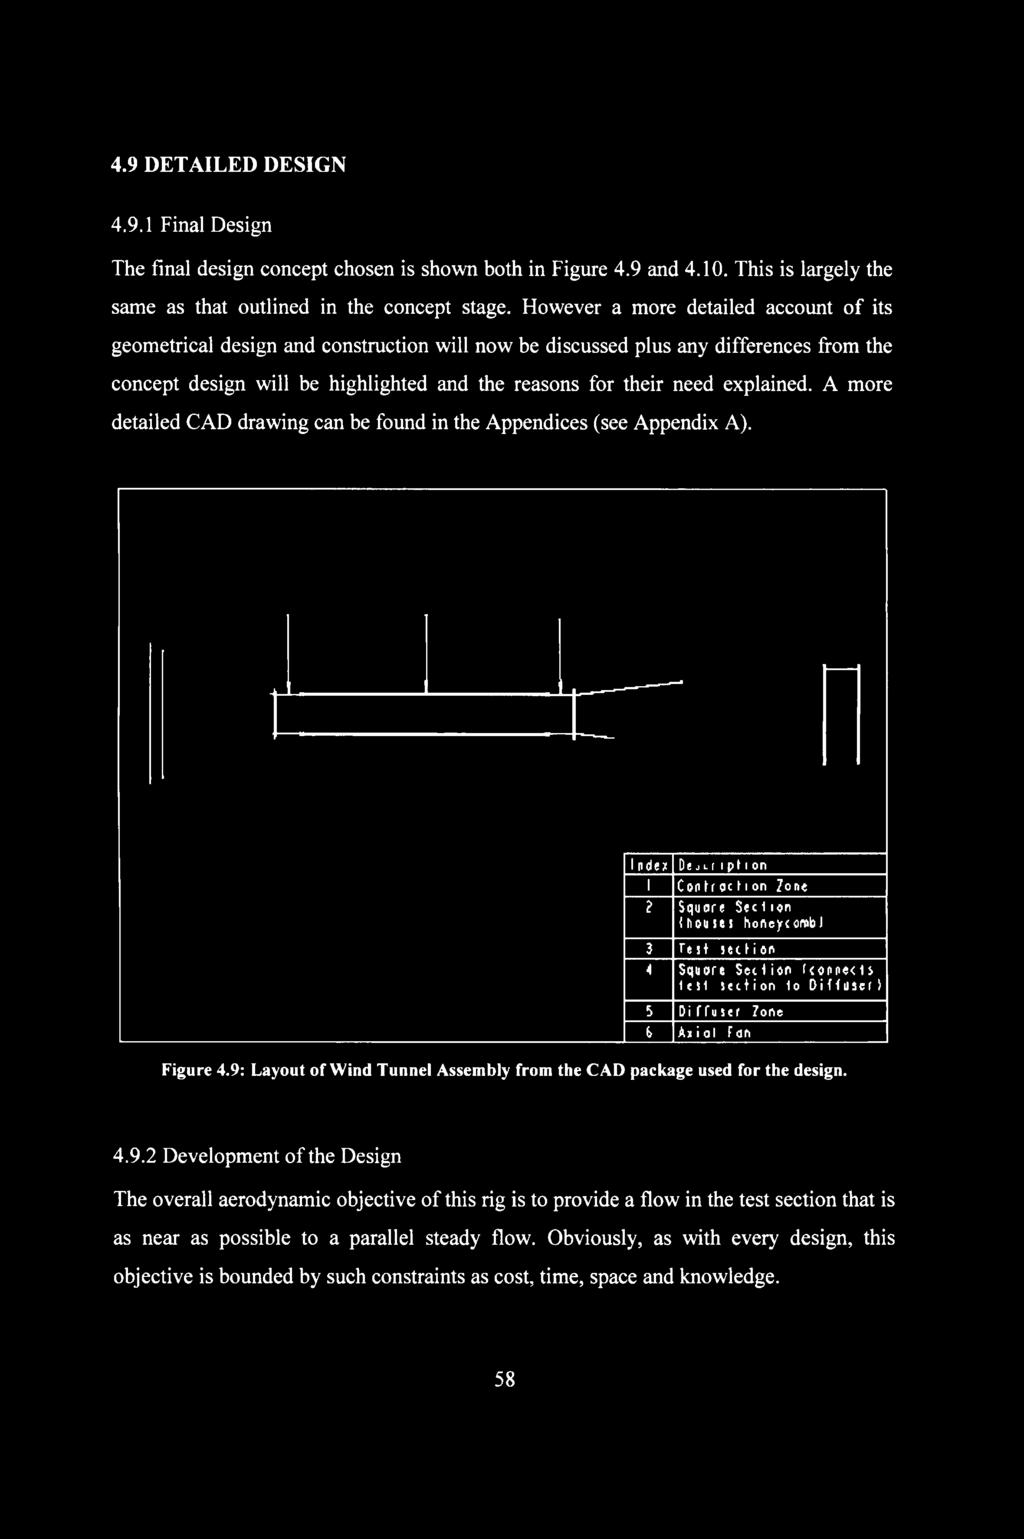 Analysis Of Boundary Layers Through Computational Fluid Dynamics And Can You Tell Me About This Circuit Elements39 Name More Specifically A Detailed Cad Drawing Be Found In The Appendices See Appendix